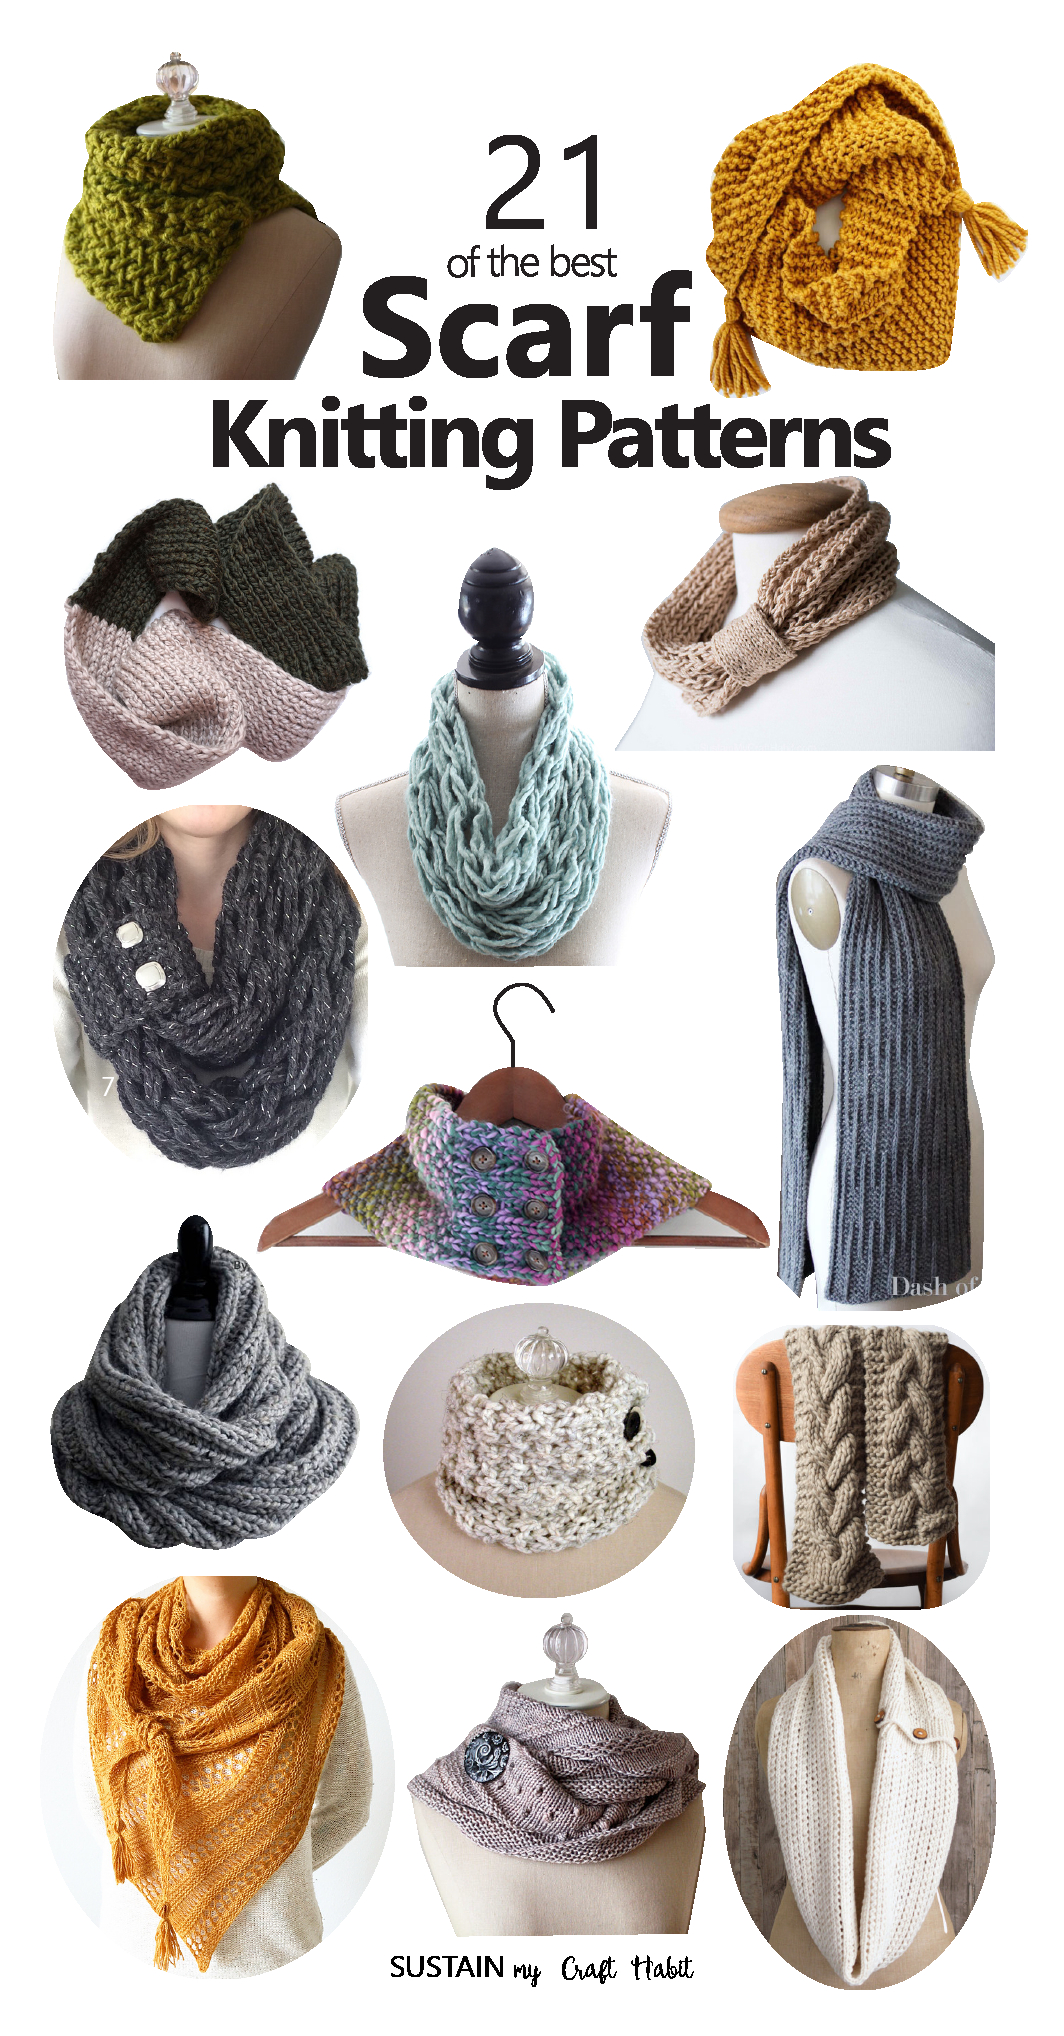 Infinity Scarf Knitting Pattern Chunky Free 21 Of The Best Scarf Knitting Patterns Sustain My Craft Habit